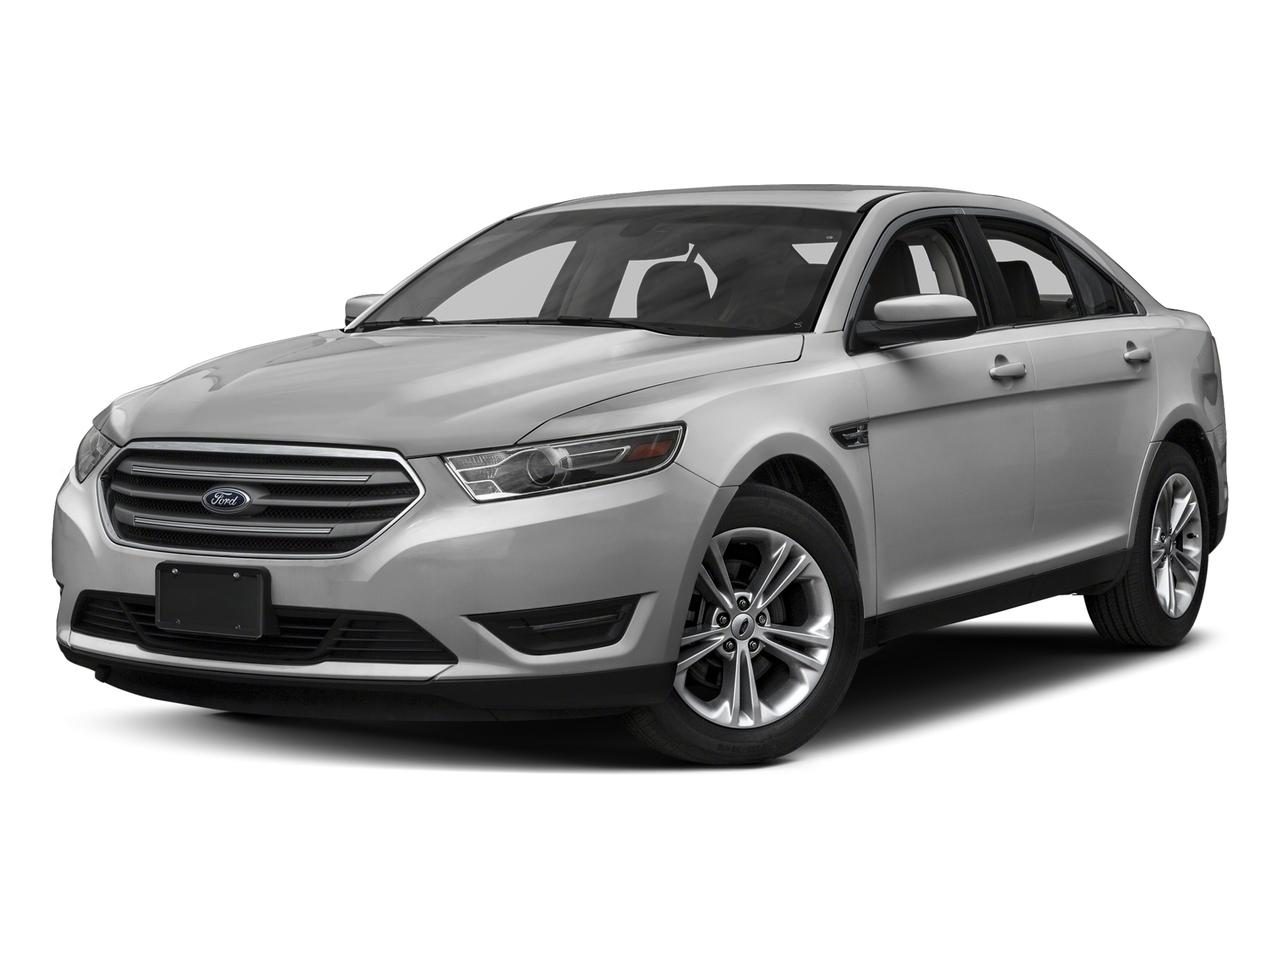 2017 Ford Taurus Vehicle Photo in Colorado Springs, CO 80905